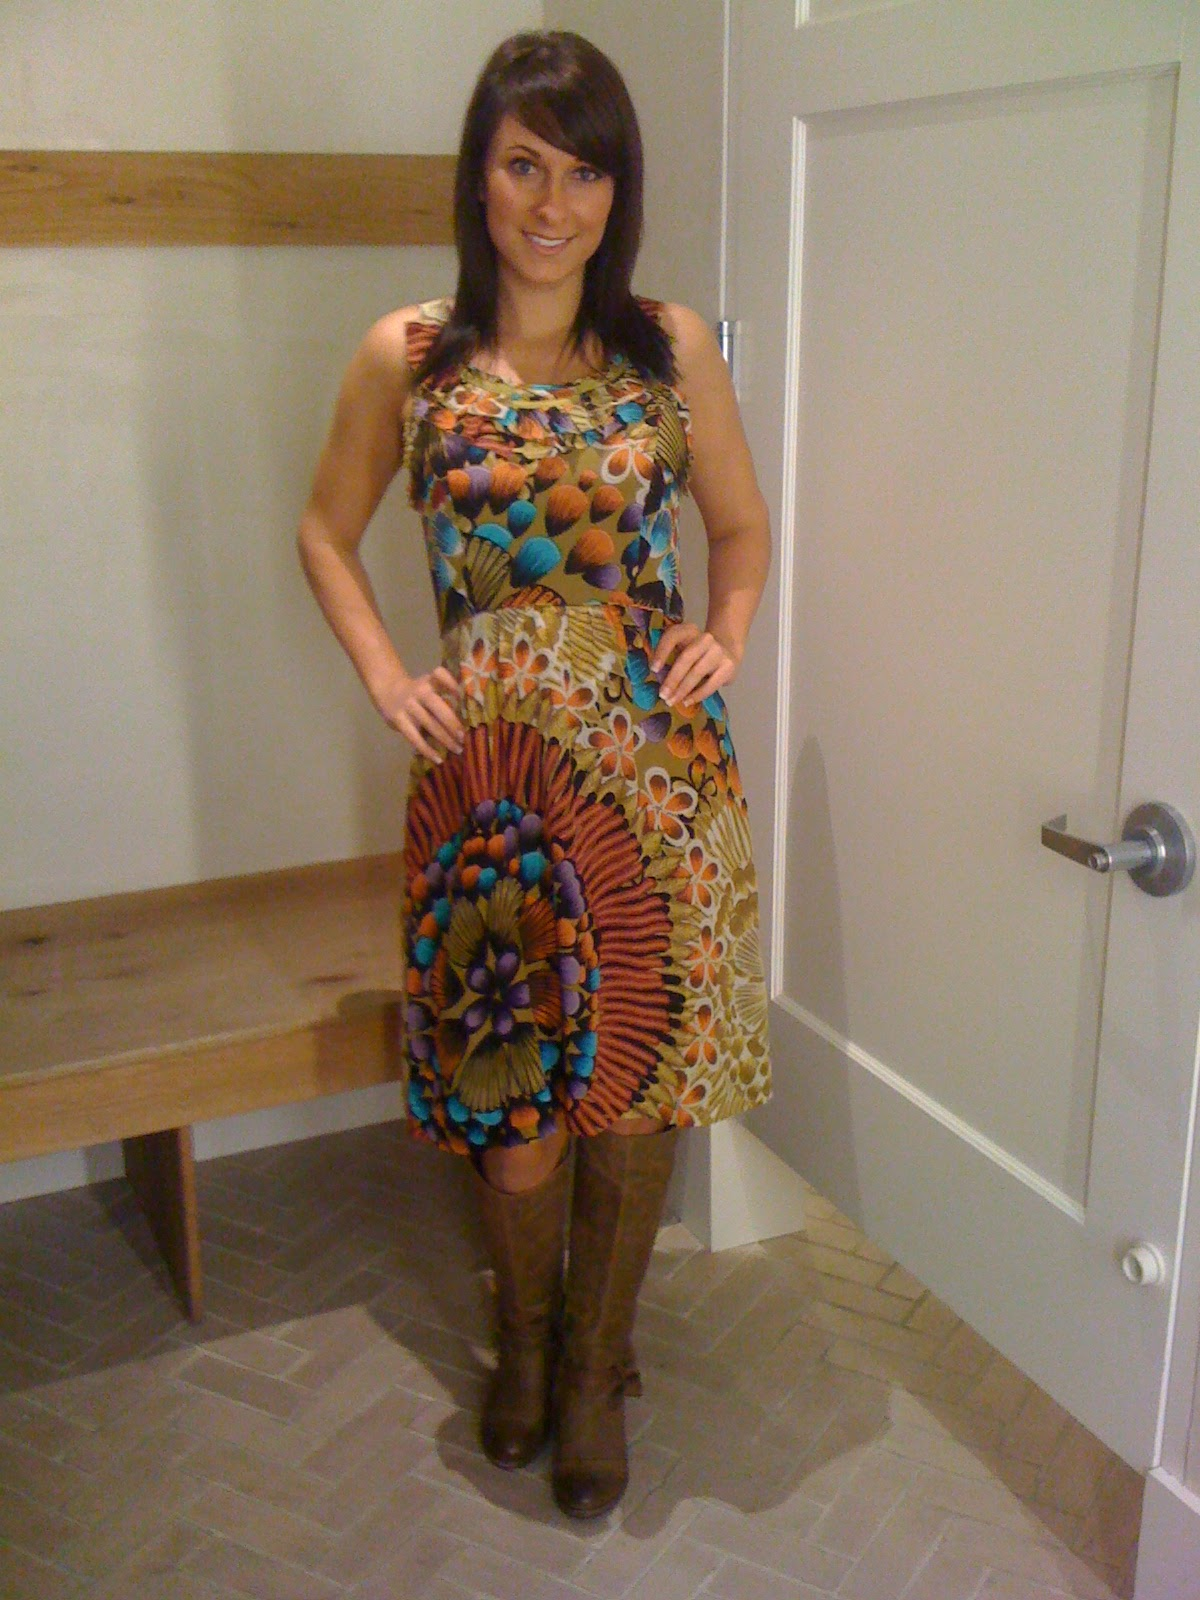 b31ad42f8b28 Anthropologie Product Reviews | Round 1 - Behind The Dressing Room Door